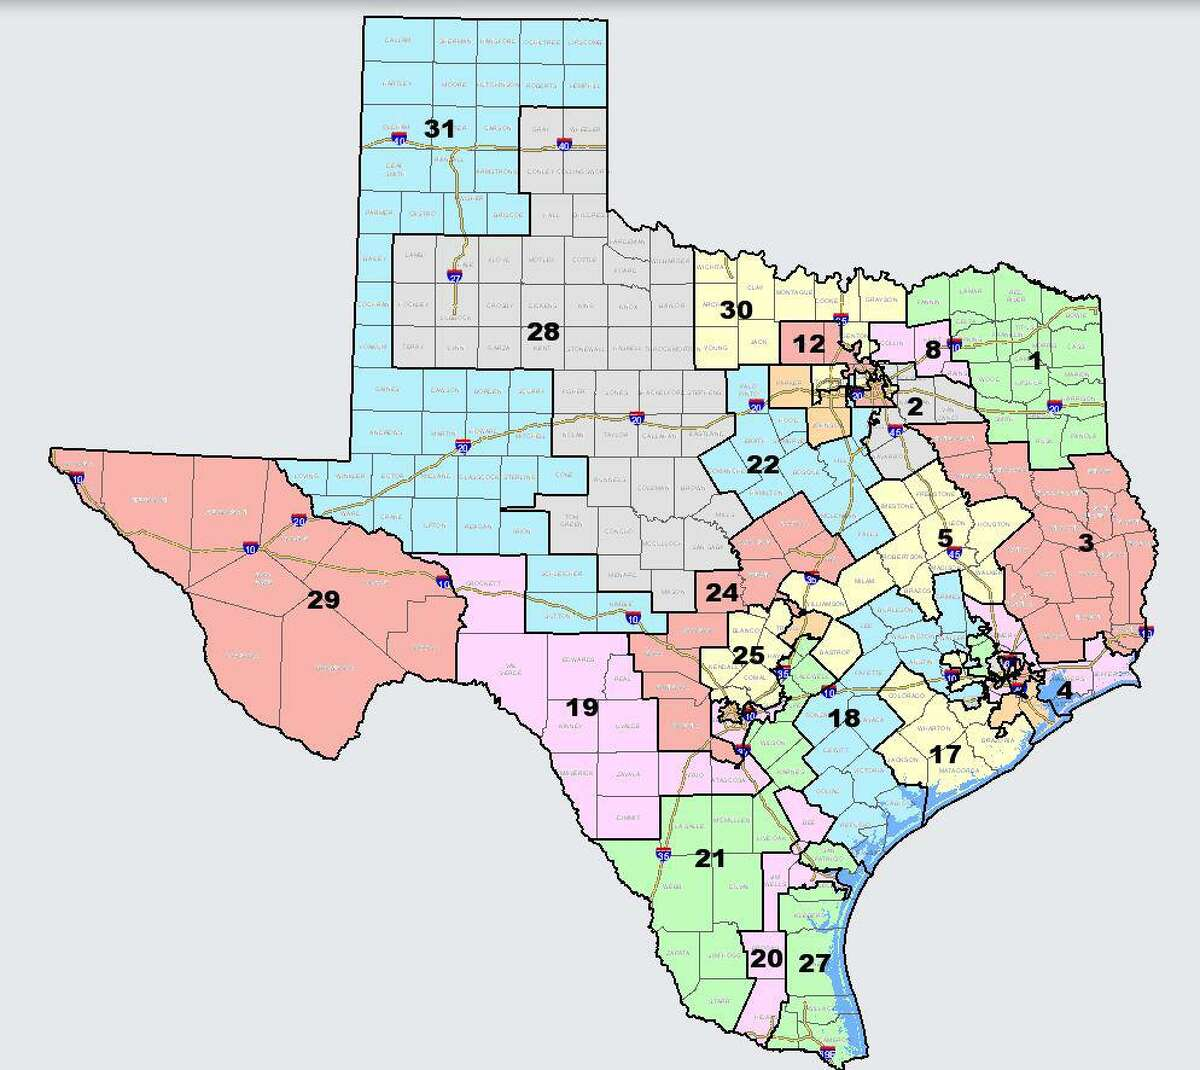 The first proposed map for new state Senate boundaries has been released to the public by state Sen. Joan Huffman, R-Houston, chairwoman of the Senate Committee on Redistricting. The Legislature is undertaking the once-a-decade redrawing of the state's political maps in a special session that began Sept. 20, 2021.